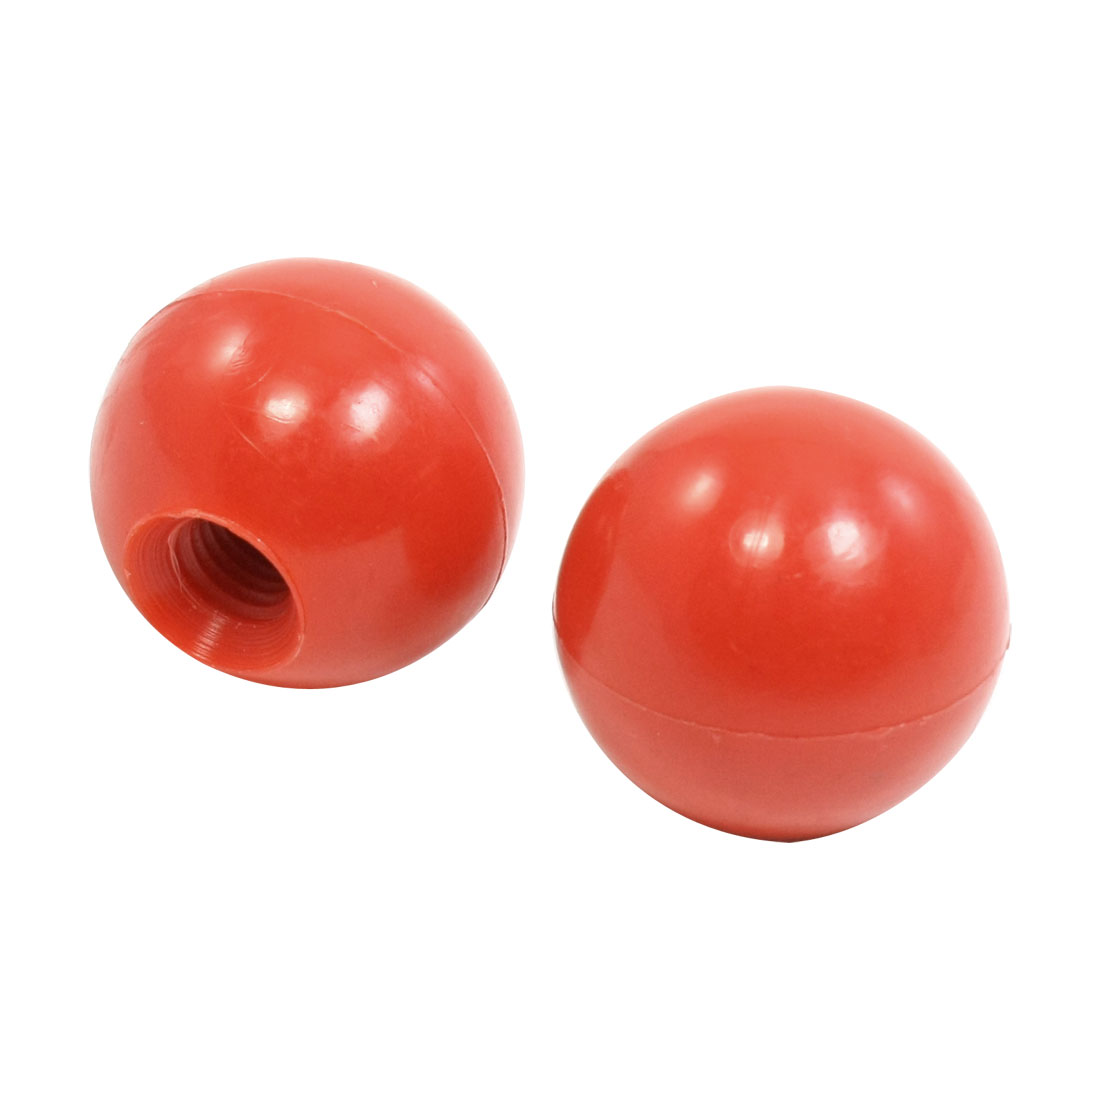 Machine-Tool-Handle-10mm-Thread-34mm-Diameter-Red-Plastic-Ball-Knobs-2-Pieces